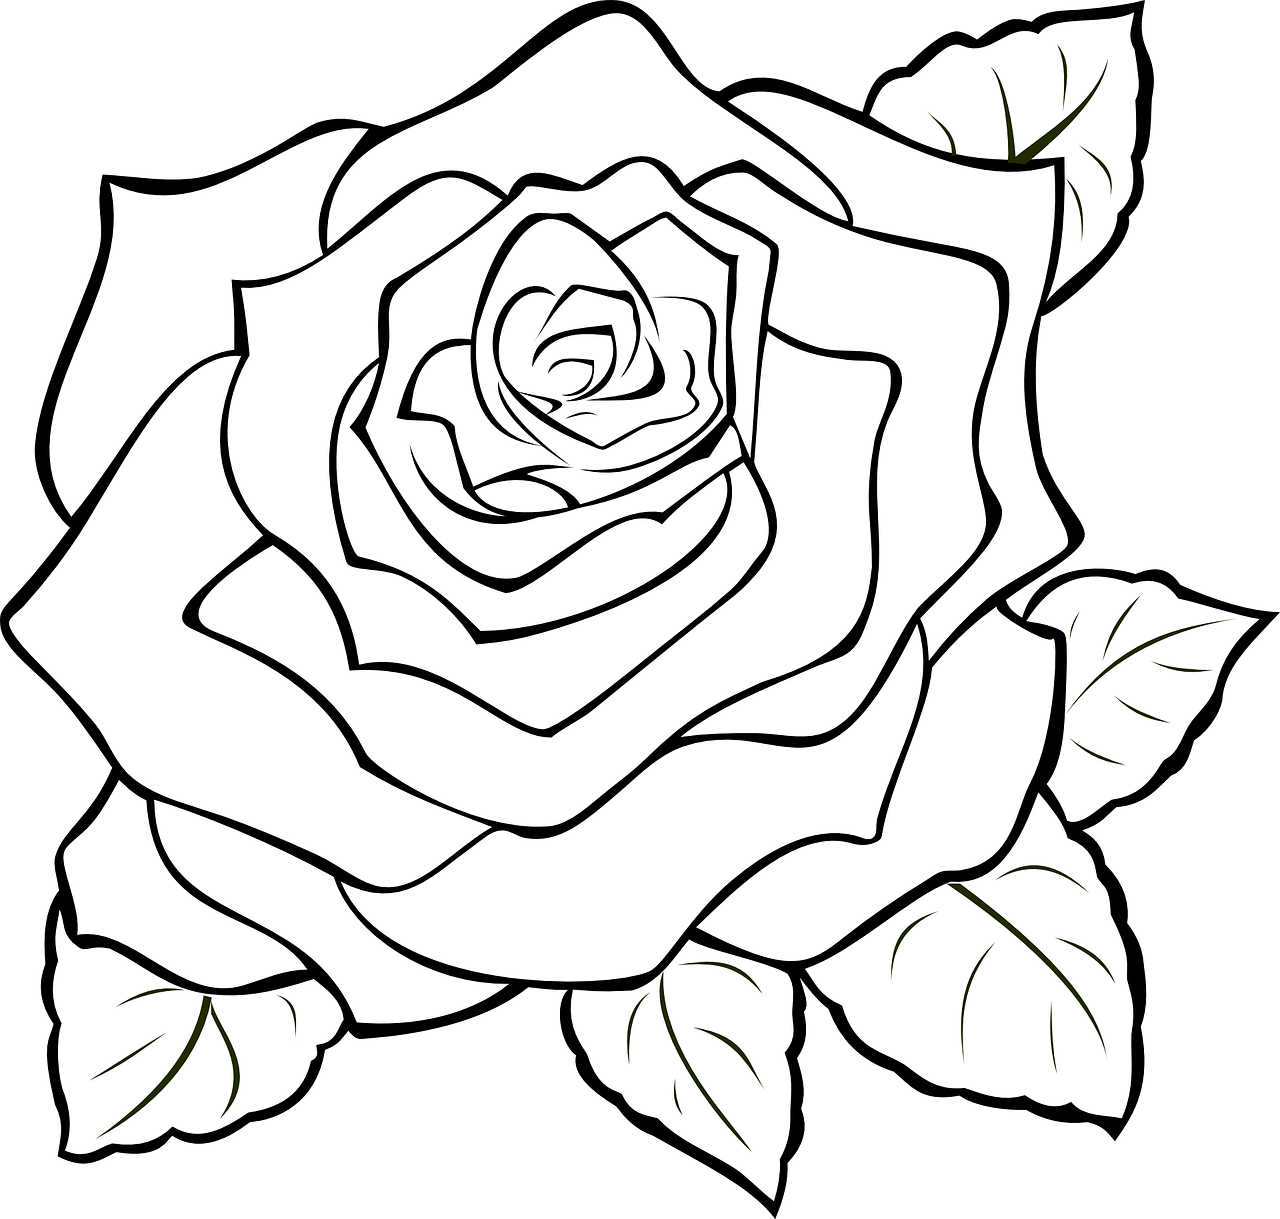 realistic rose flower coloring pages how to make drawing of rose 14 free printable rose flower pages rose coloring realistic